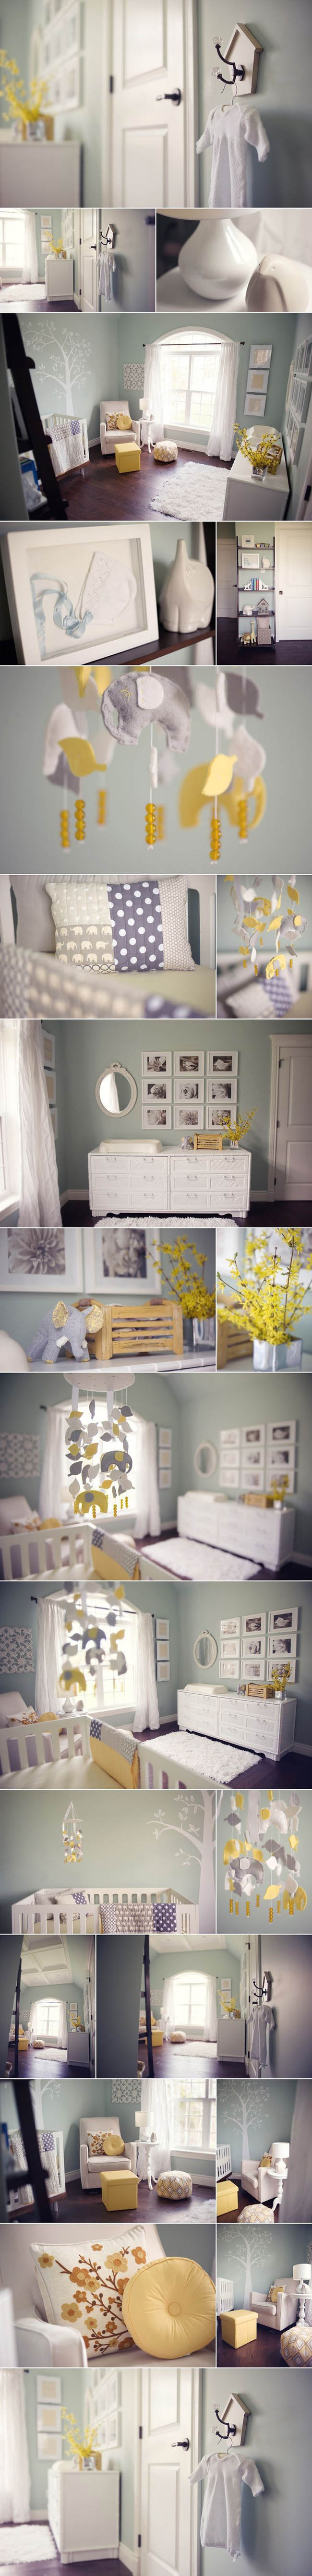 Kerianne Brown Photography nursery duck egg blue and yellow interior